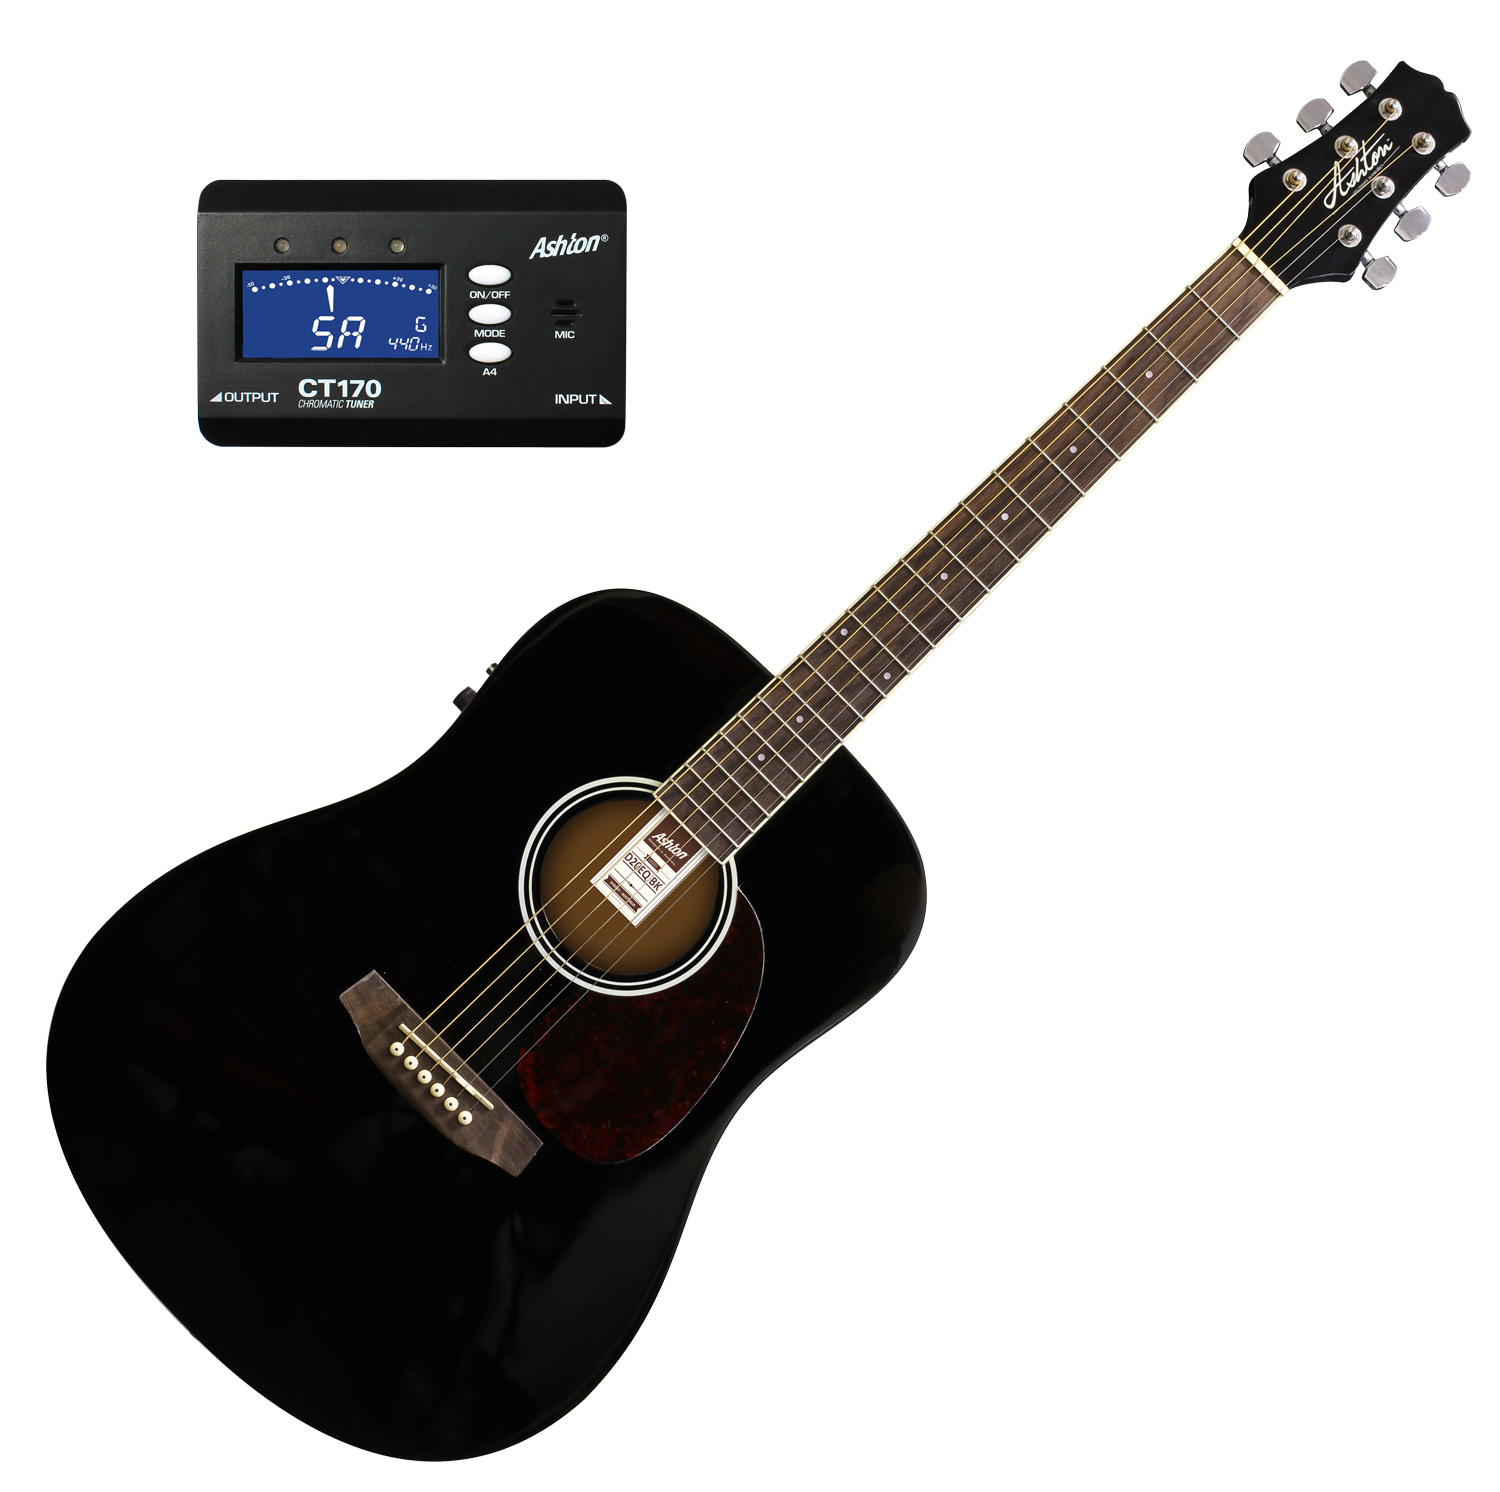 musicworks guitars acoustic electric guitars acoustic electric guitar ashton d20eq. Black Bedroom Furniture Sets. Home Design Ideas